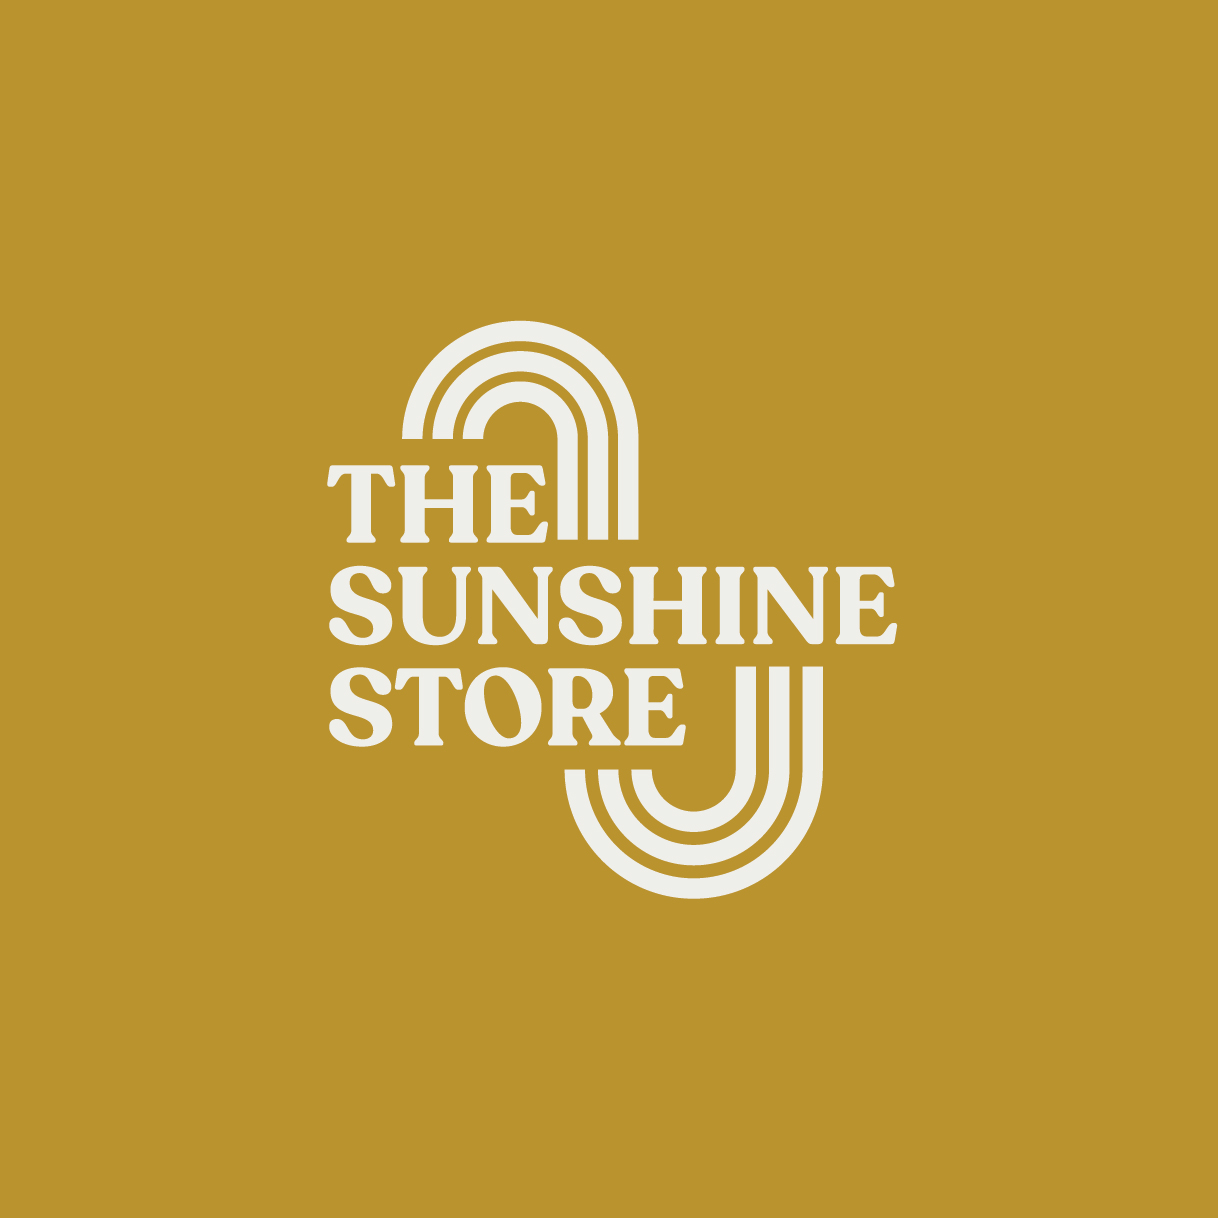 The_Sunshine_Store_Logos_By_Stellen_Design_Profile-01